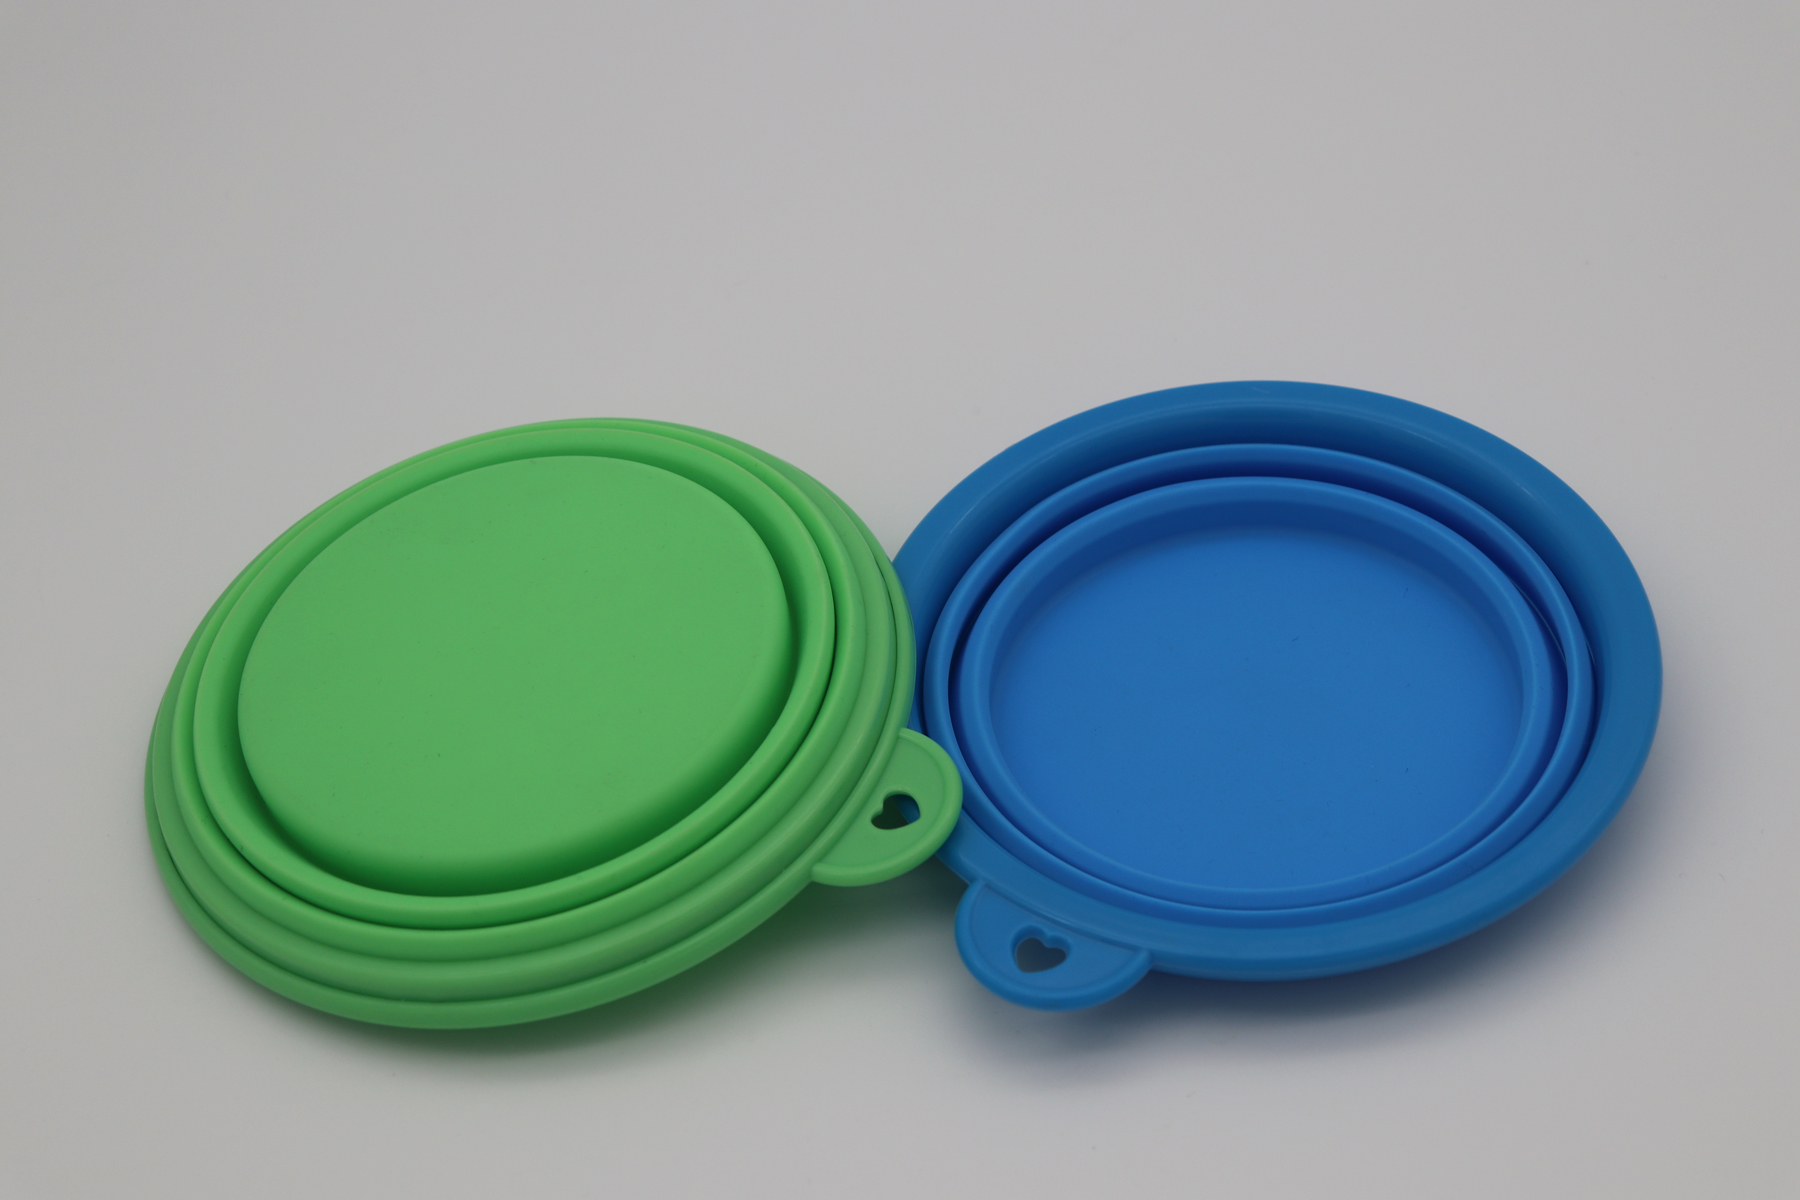 http://www.refinehksilicone.cn/data/images/product/20180417100358_640.jpg